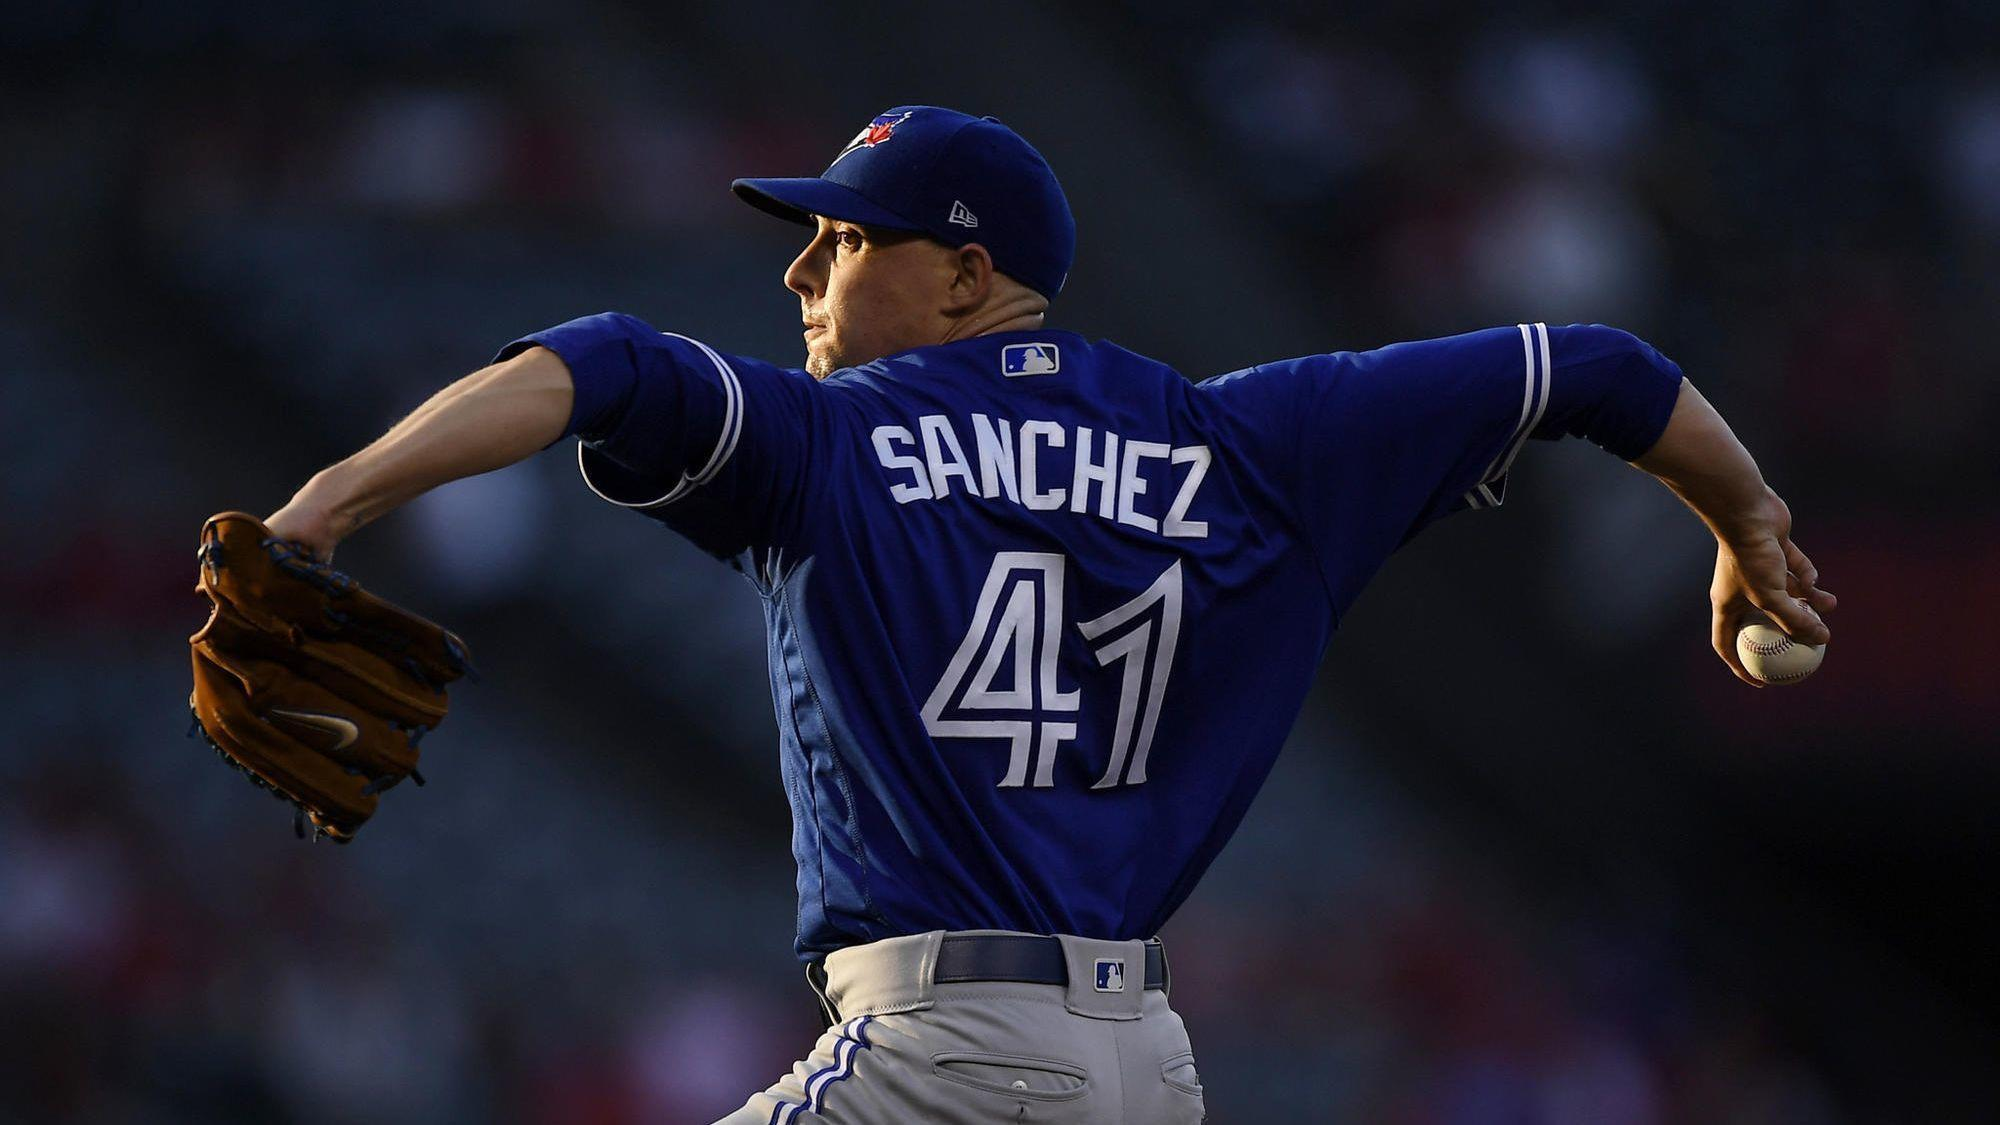 MLB: Blue Jays put pitchers Aaron Sanchez and Jaime Garcia on DL